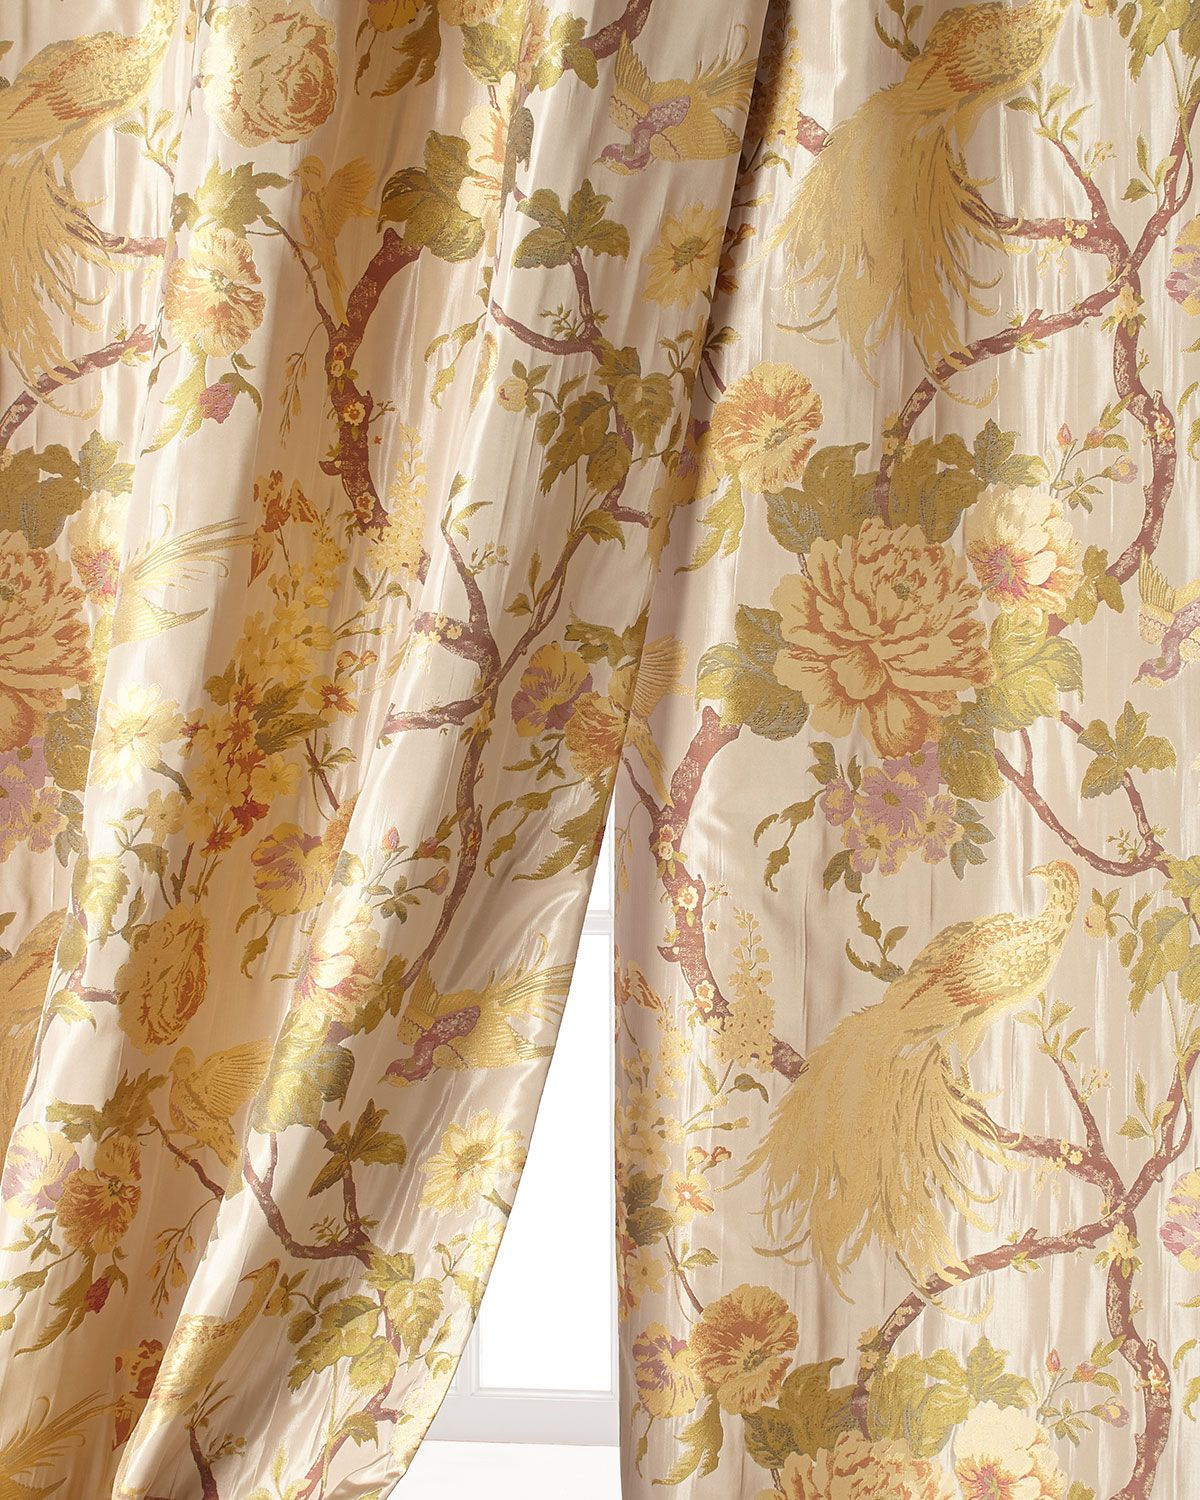 96 Quot L Fanciful Pheasant Curtain Brown Gold Sweet Dreams